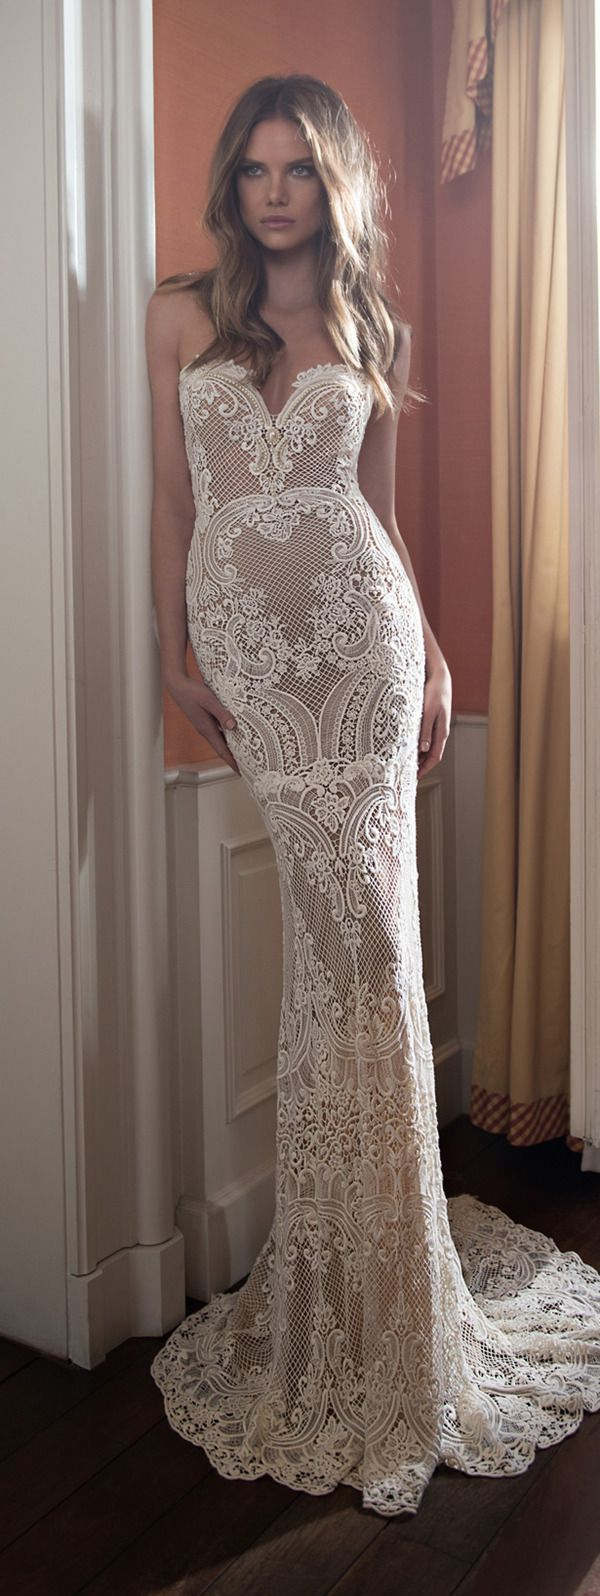 OBSESSED WITH THIS!!! berta bridal vintage mermaid lace wedding dresses for fall 2015